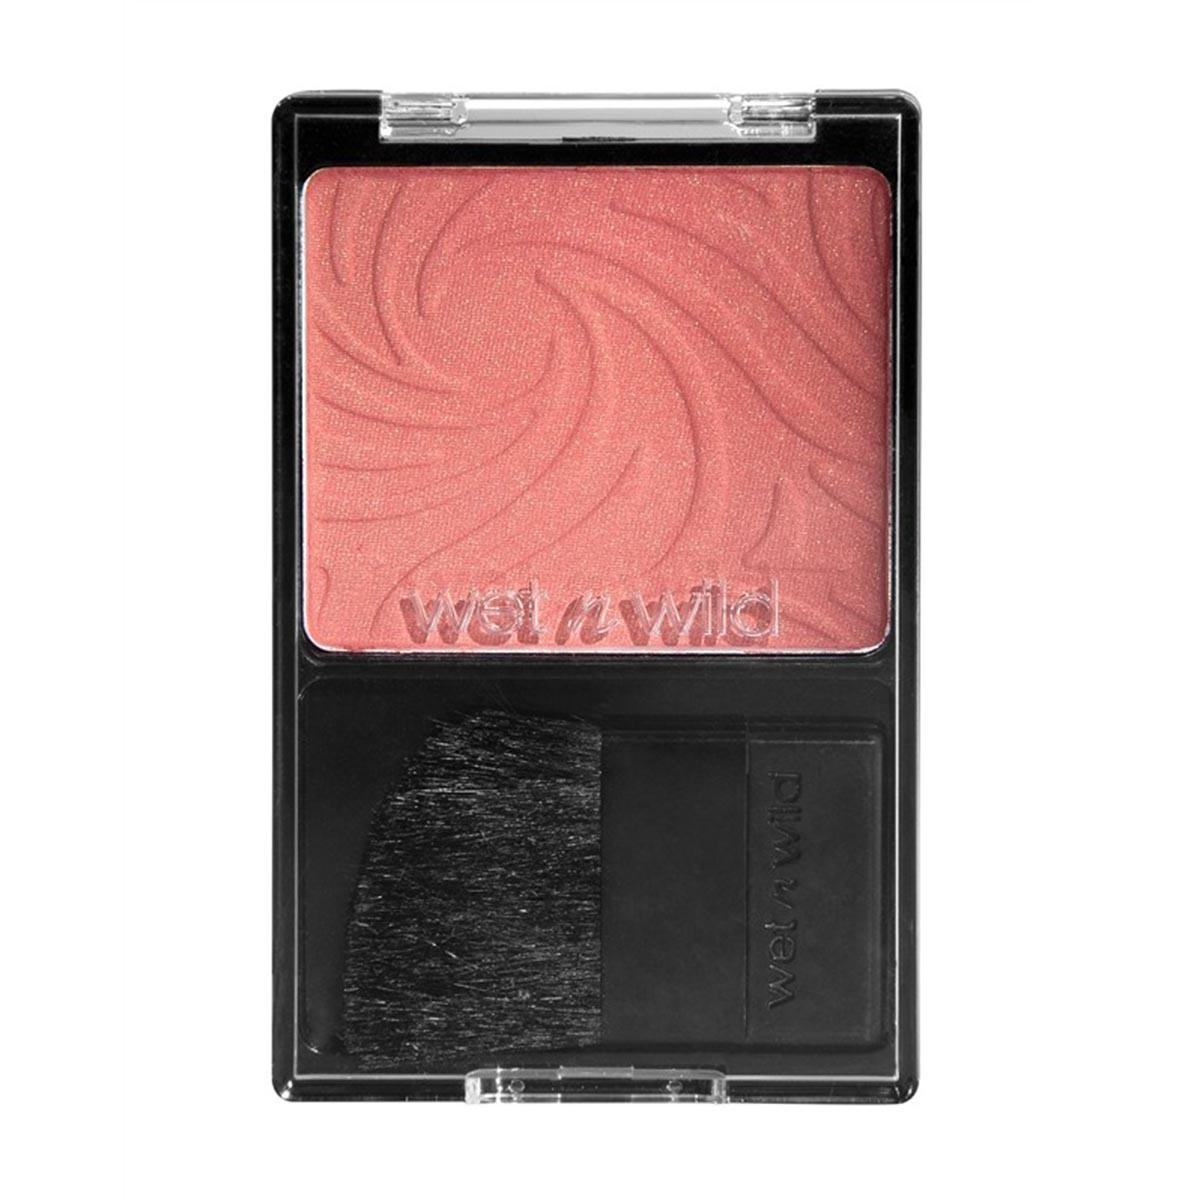 Wet n wild Coloricon Blusher Pearlescent Pink